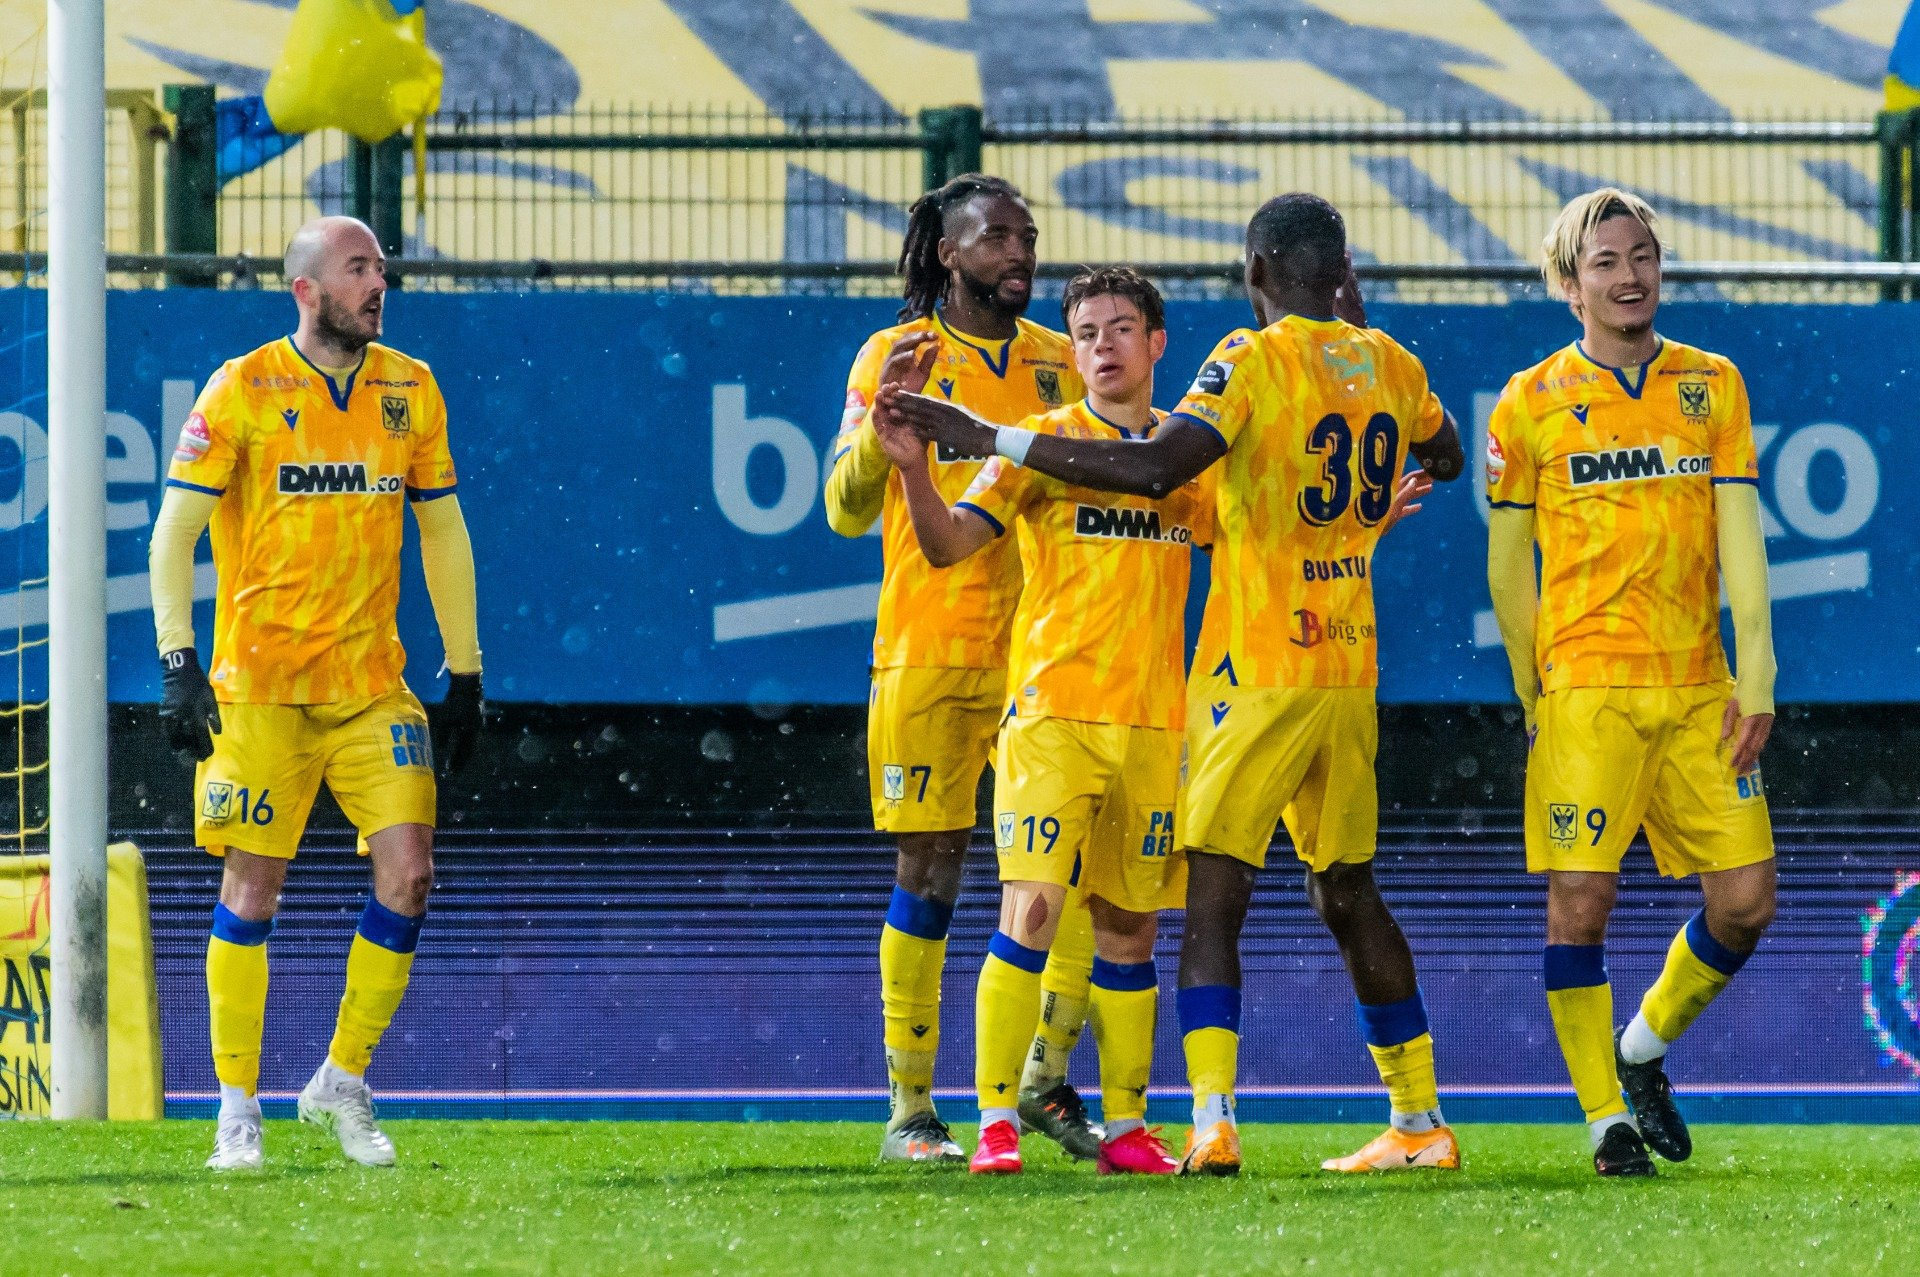 STVV stays for sure in D1A after 2-4 win at Waasland-Beveren!